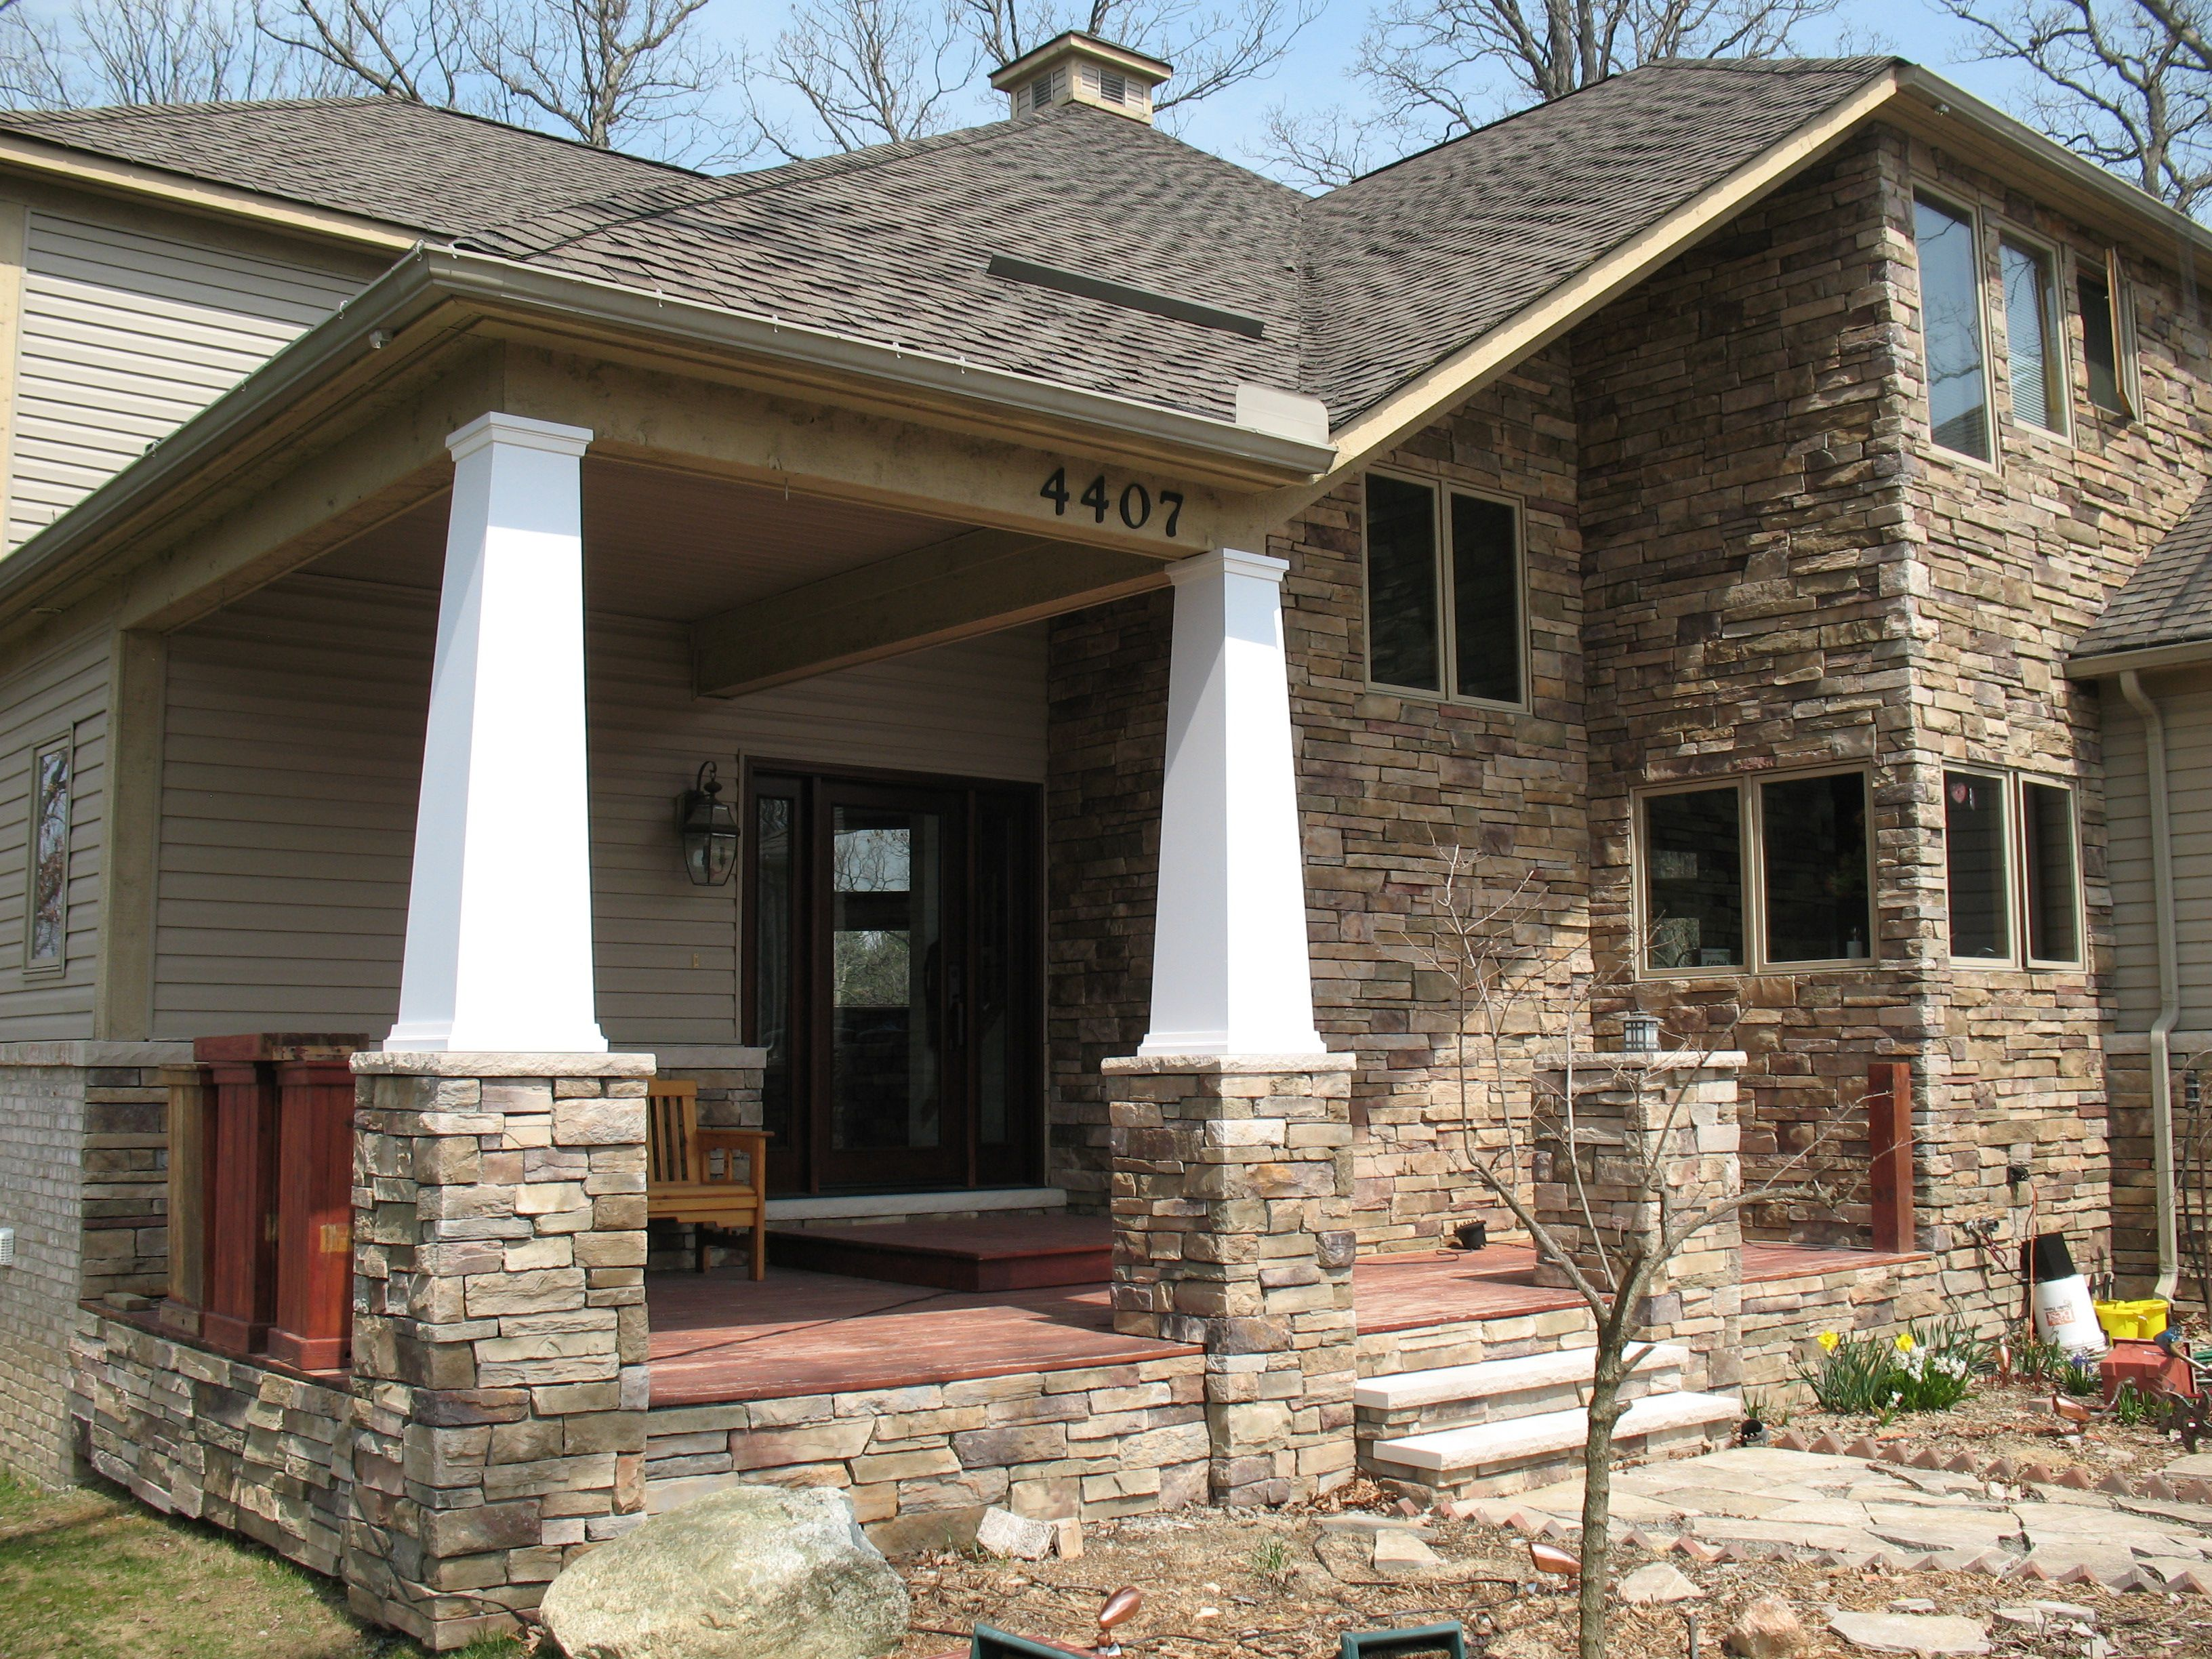 Bucks county country ledgestone by boral cultured stone for Exterior ledgestone